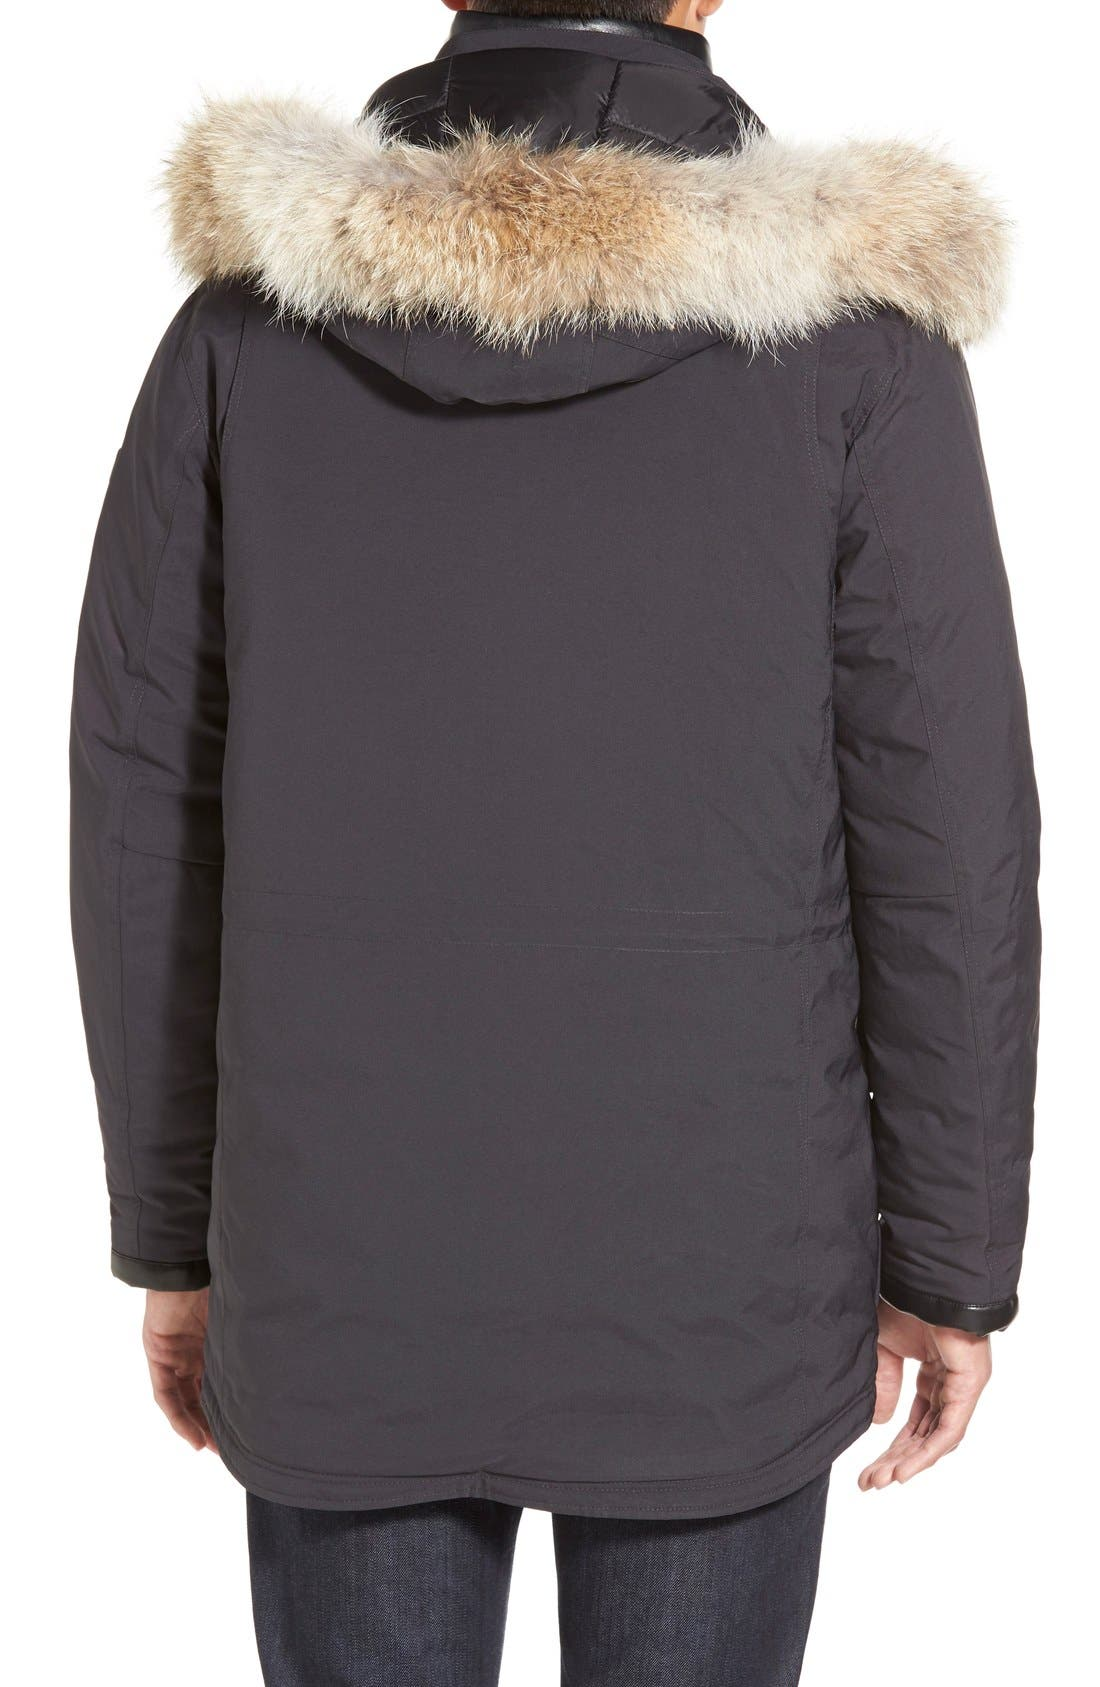 TUMI,                             'Fully Loaded' Parka with Genuine Coyote Fur Trim,                             Alternate thumbnail 5, color,                             021